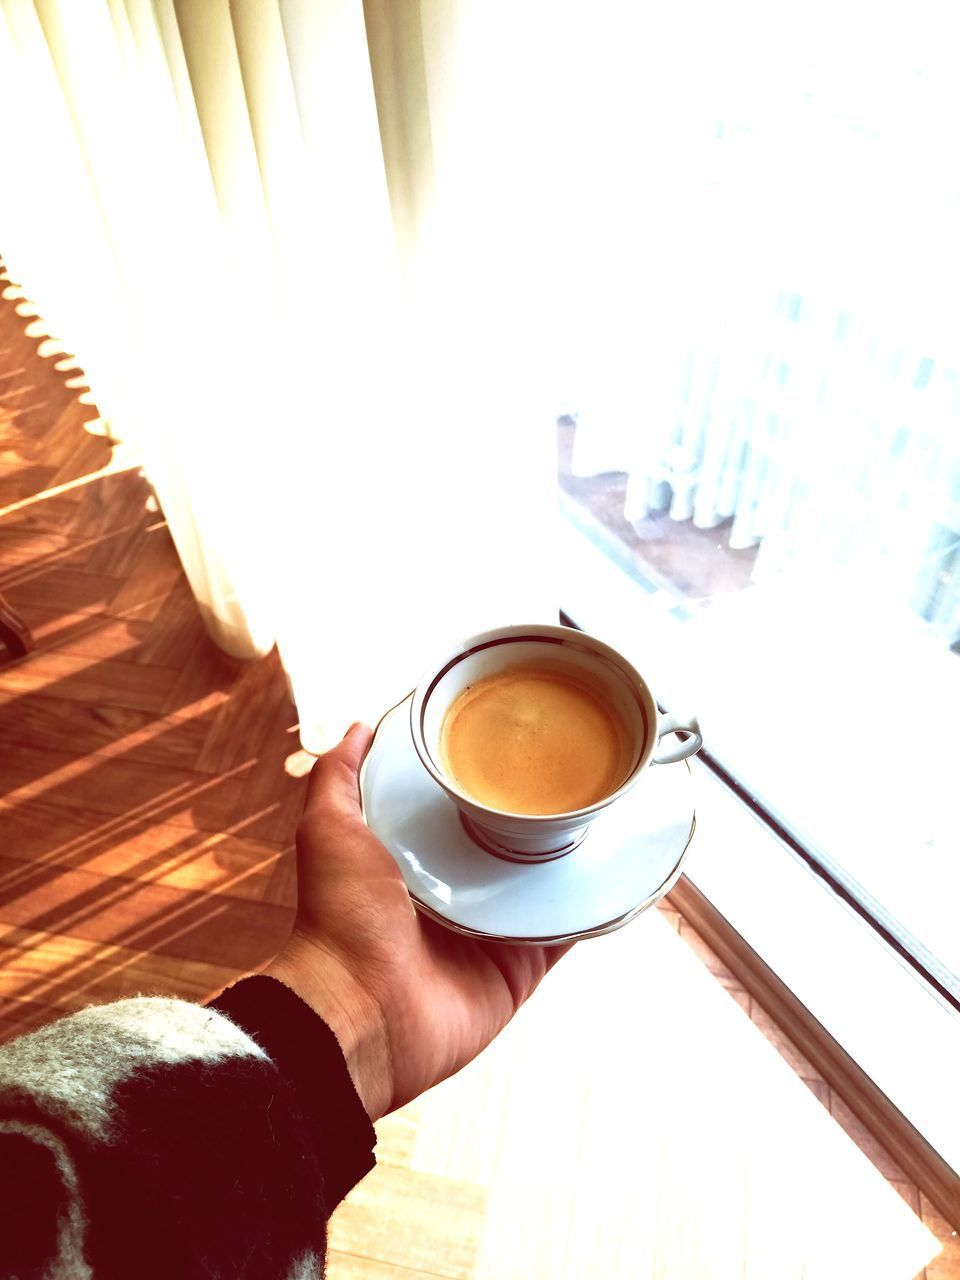 CROPPED IMAGE OF HAND HOLDING COFFEE WITH CUP OF CAPPUCCINO